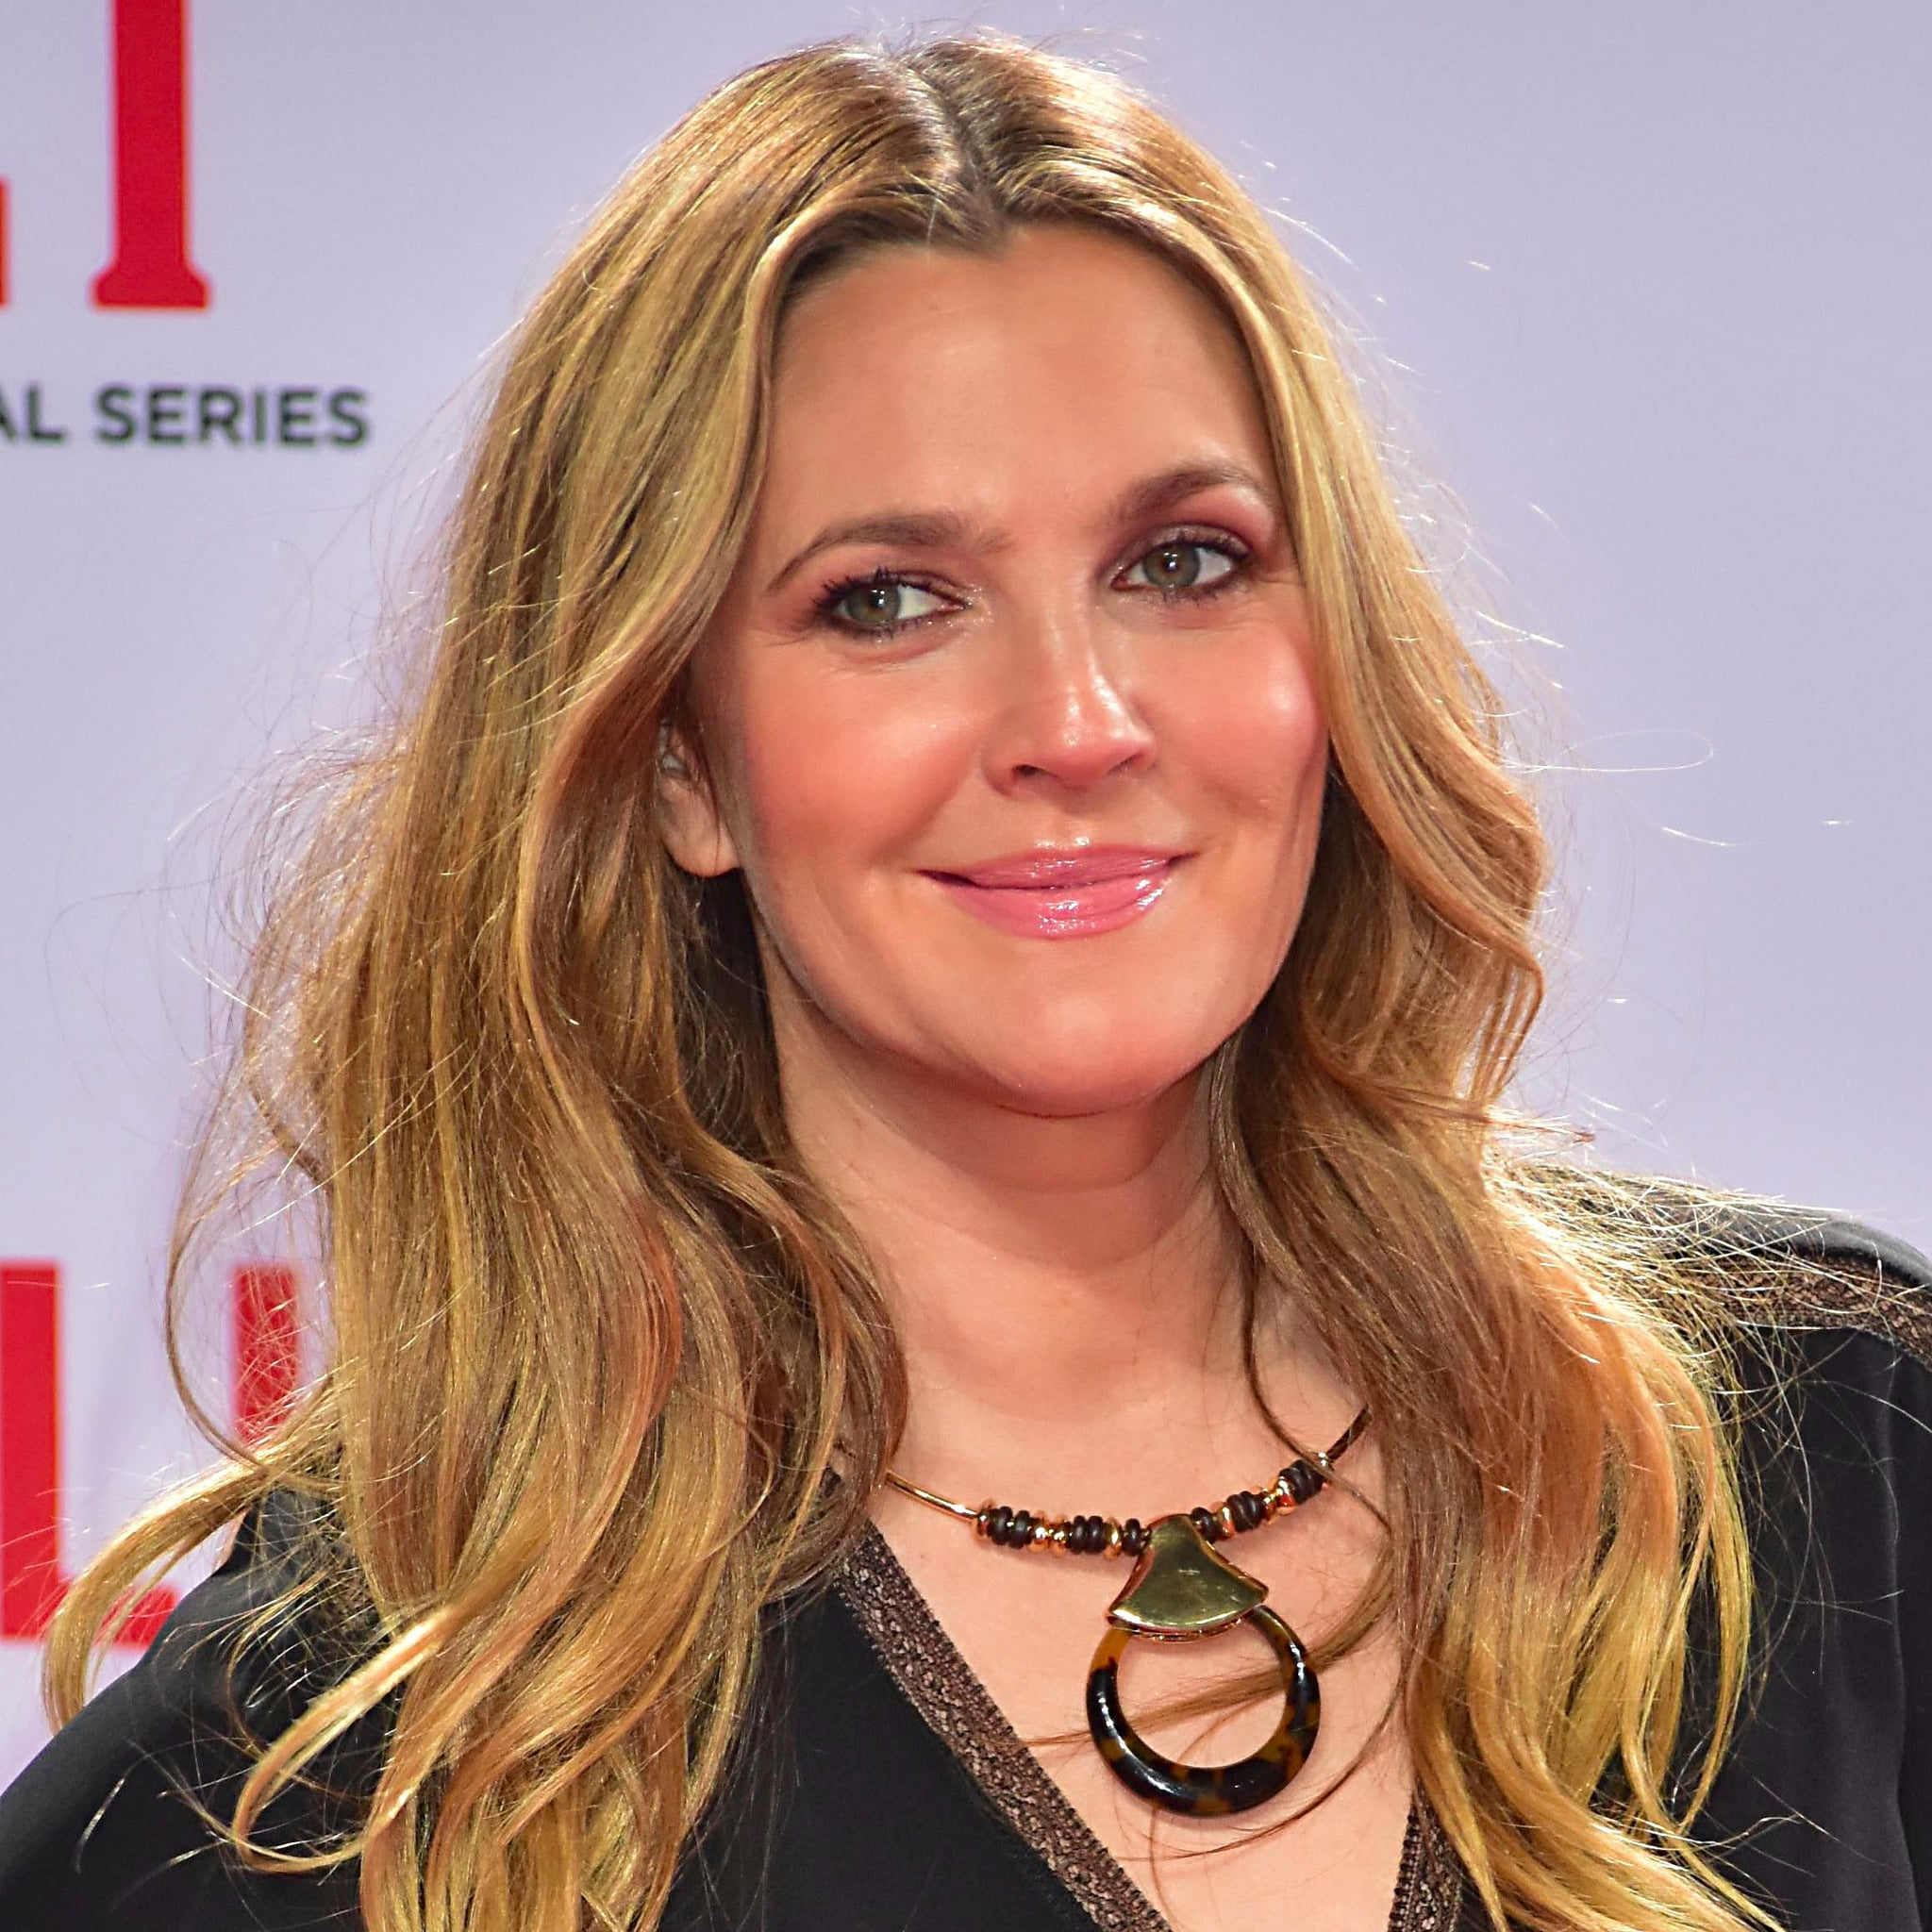 What beauty products does drew barrymore use popsugar beauty izmirmasajfo